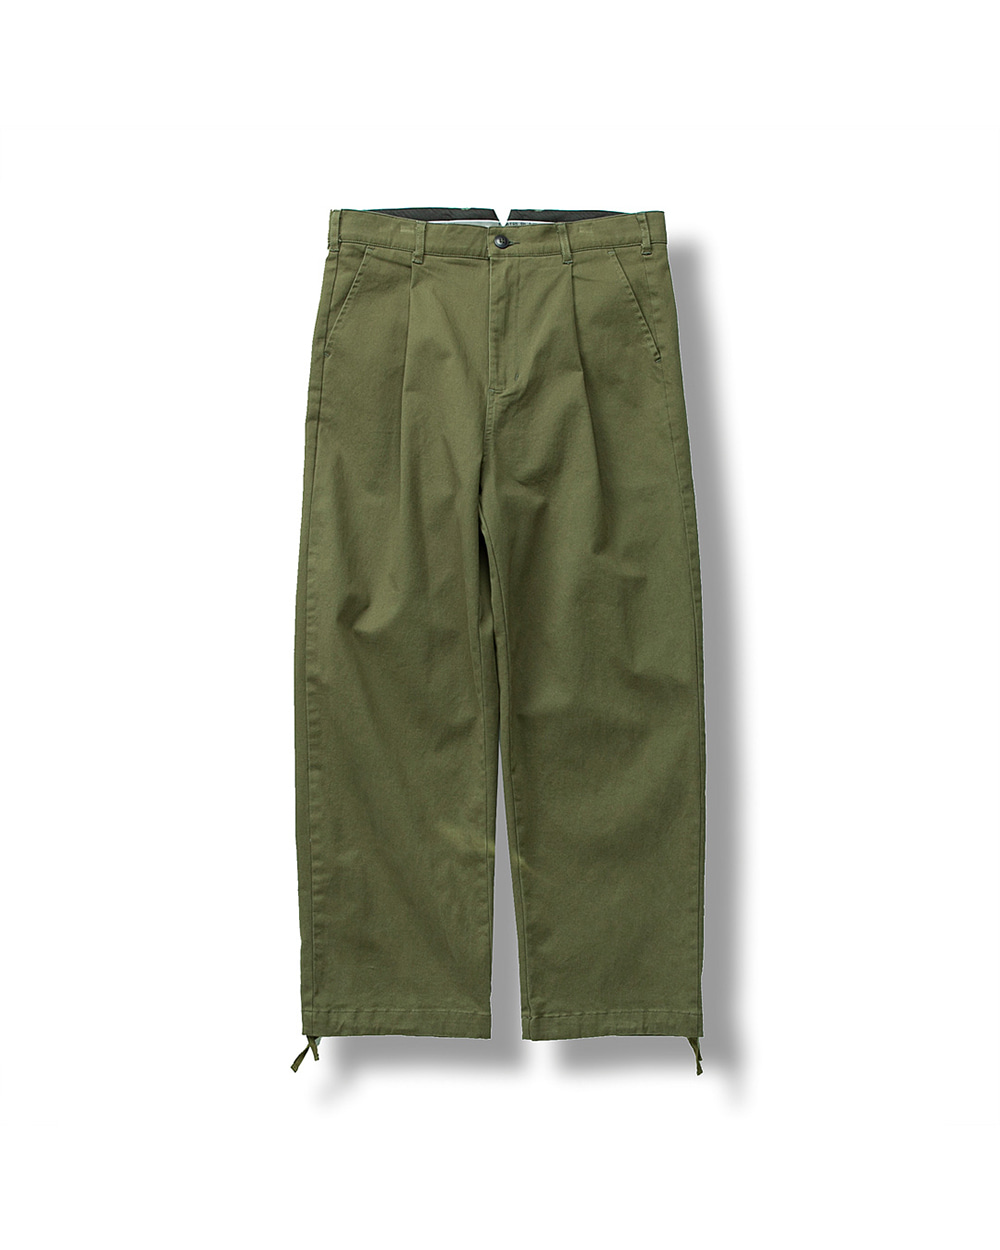 WIDEFIT CHINO PANTS OLIVE